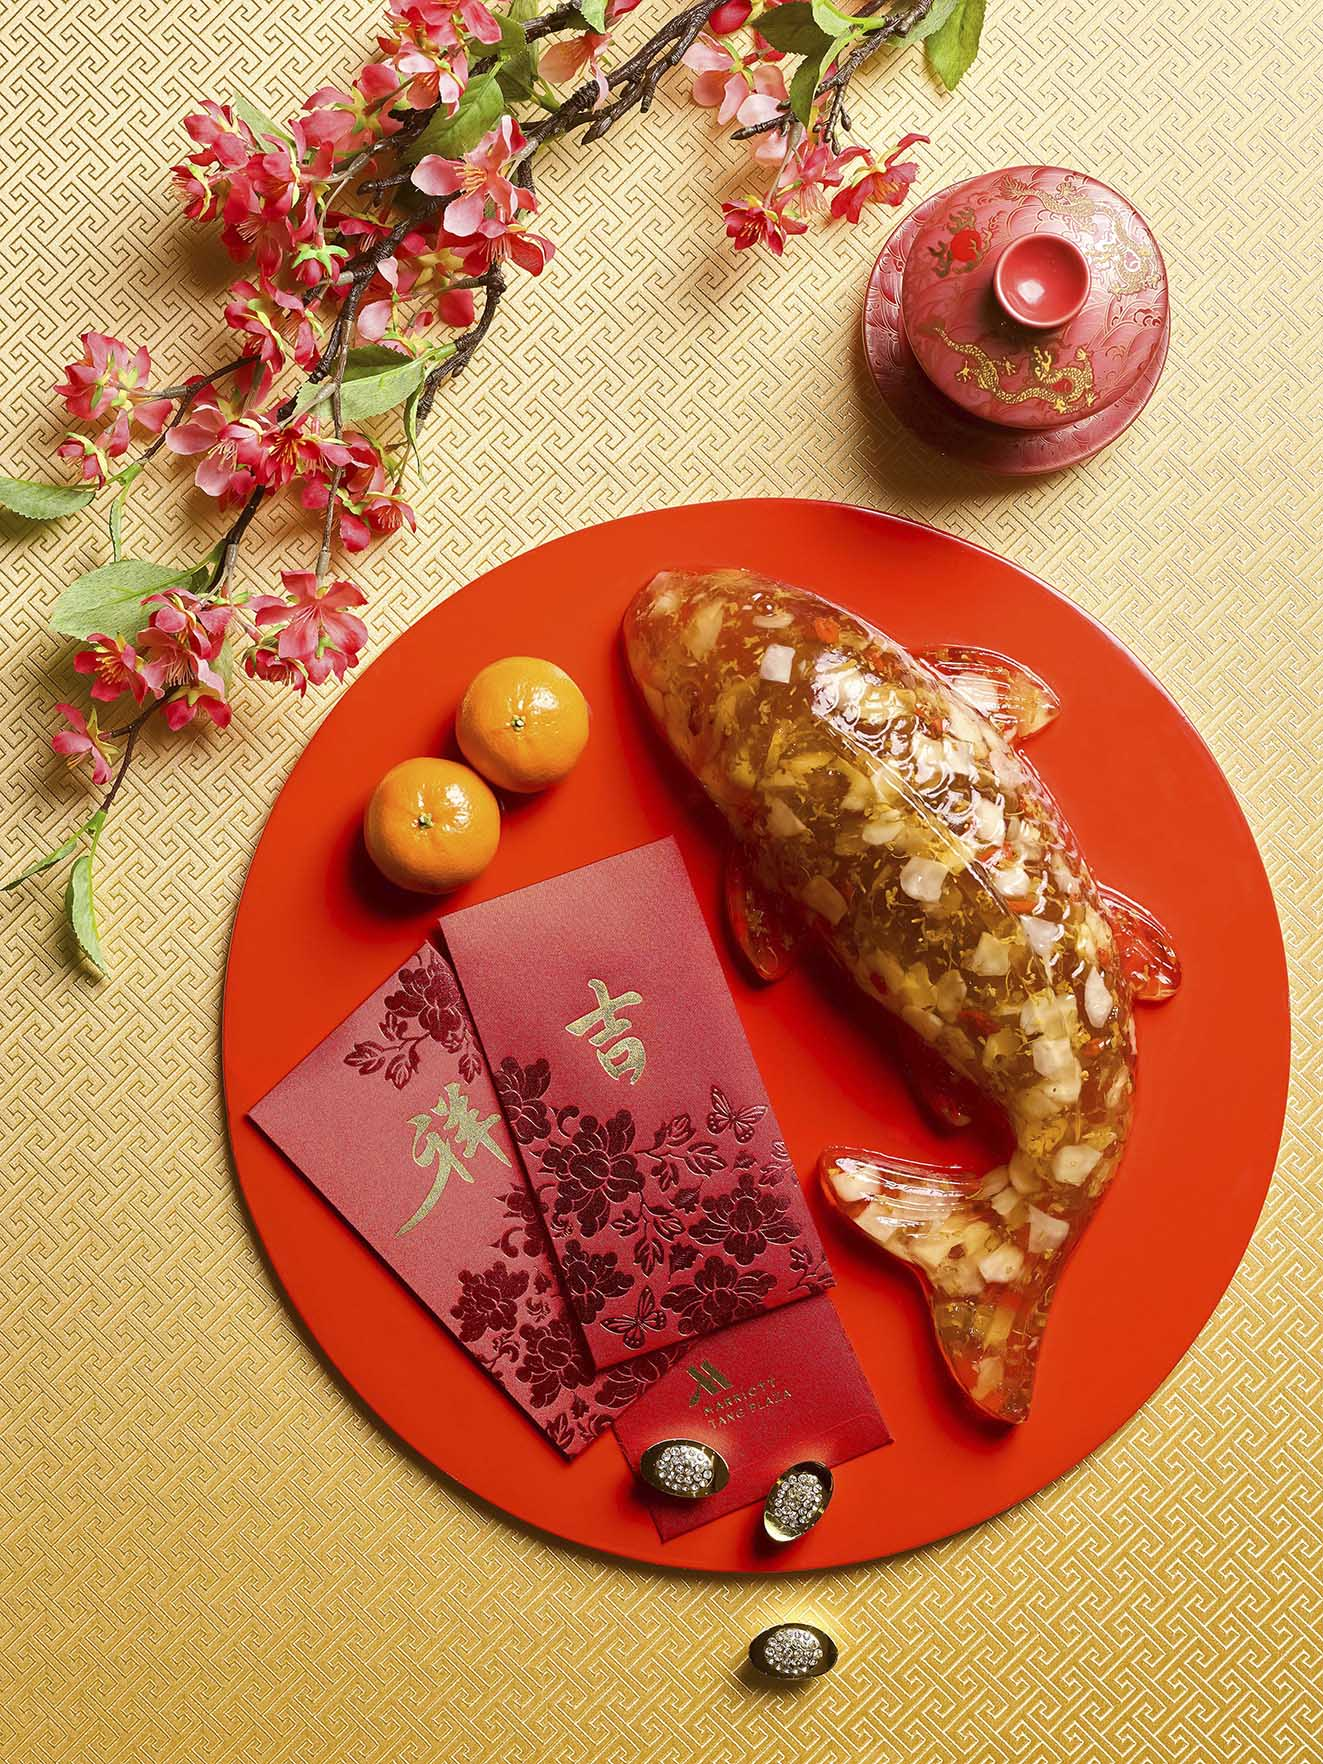 Osmanthus-Water Chestnut Koi Cake  — 锦鲤桂花马蹄糕